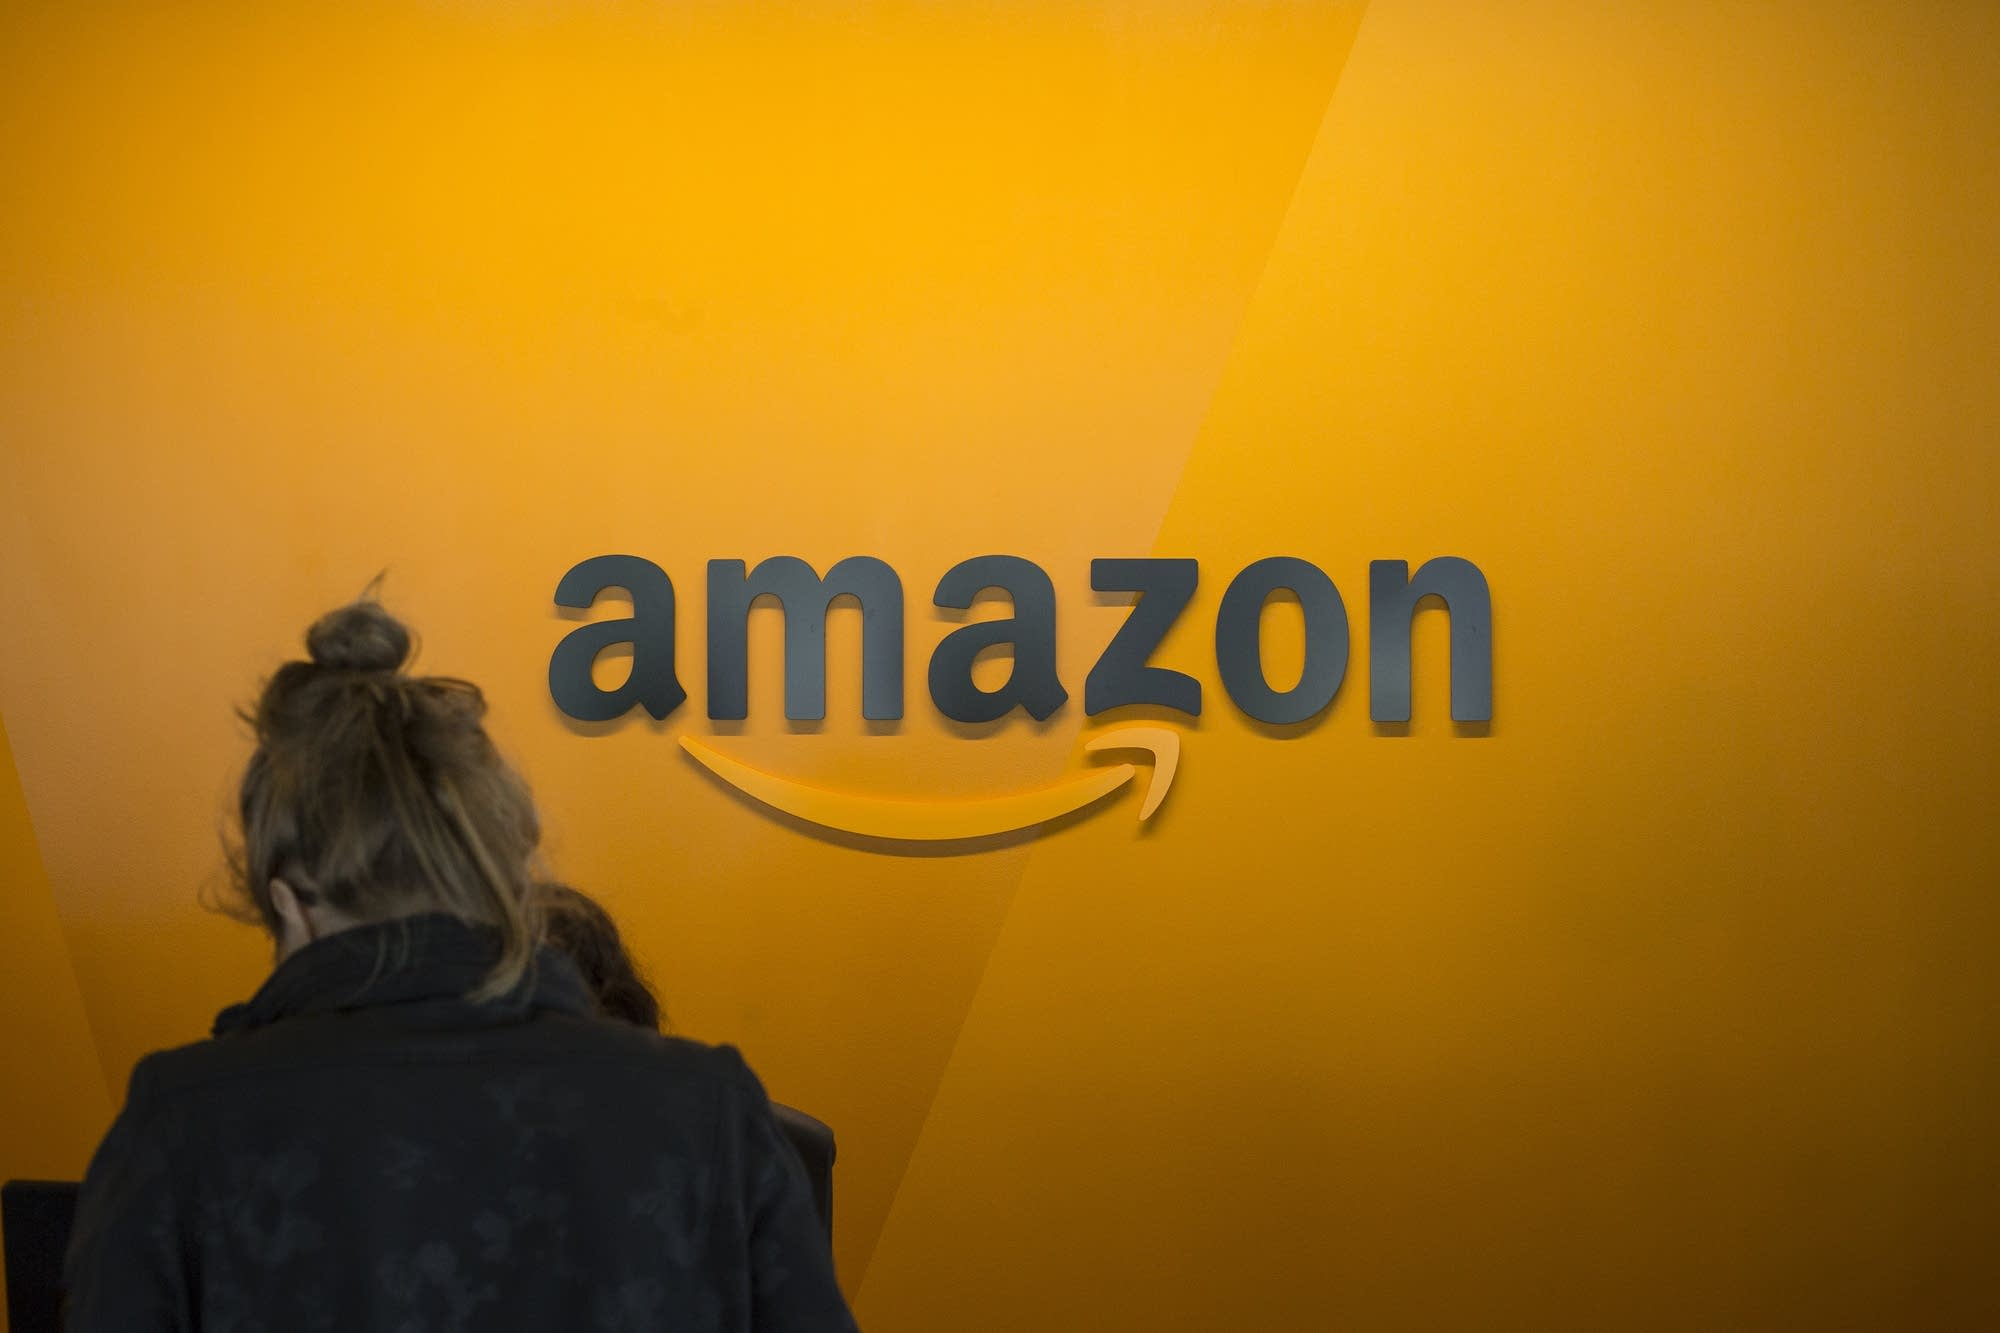 Amazon to expand Vancouver tech hub, create 3000 new jobs